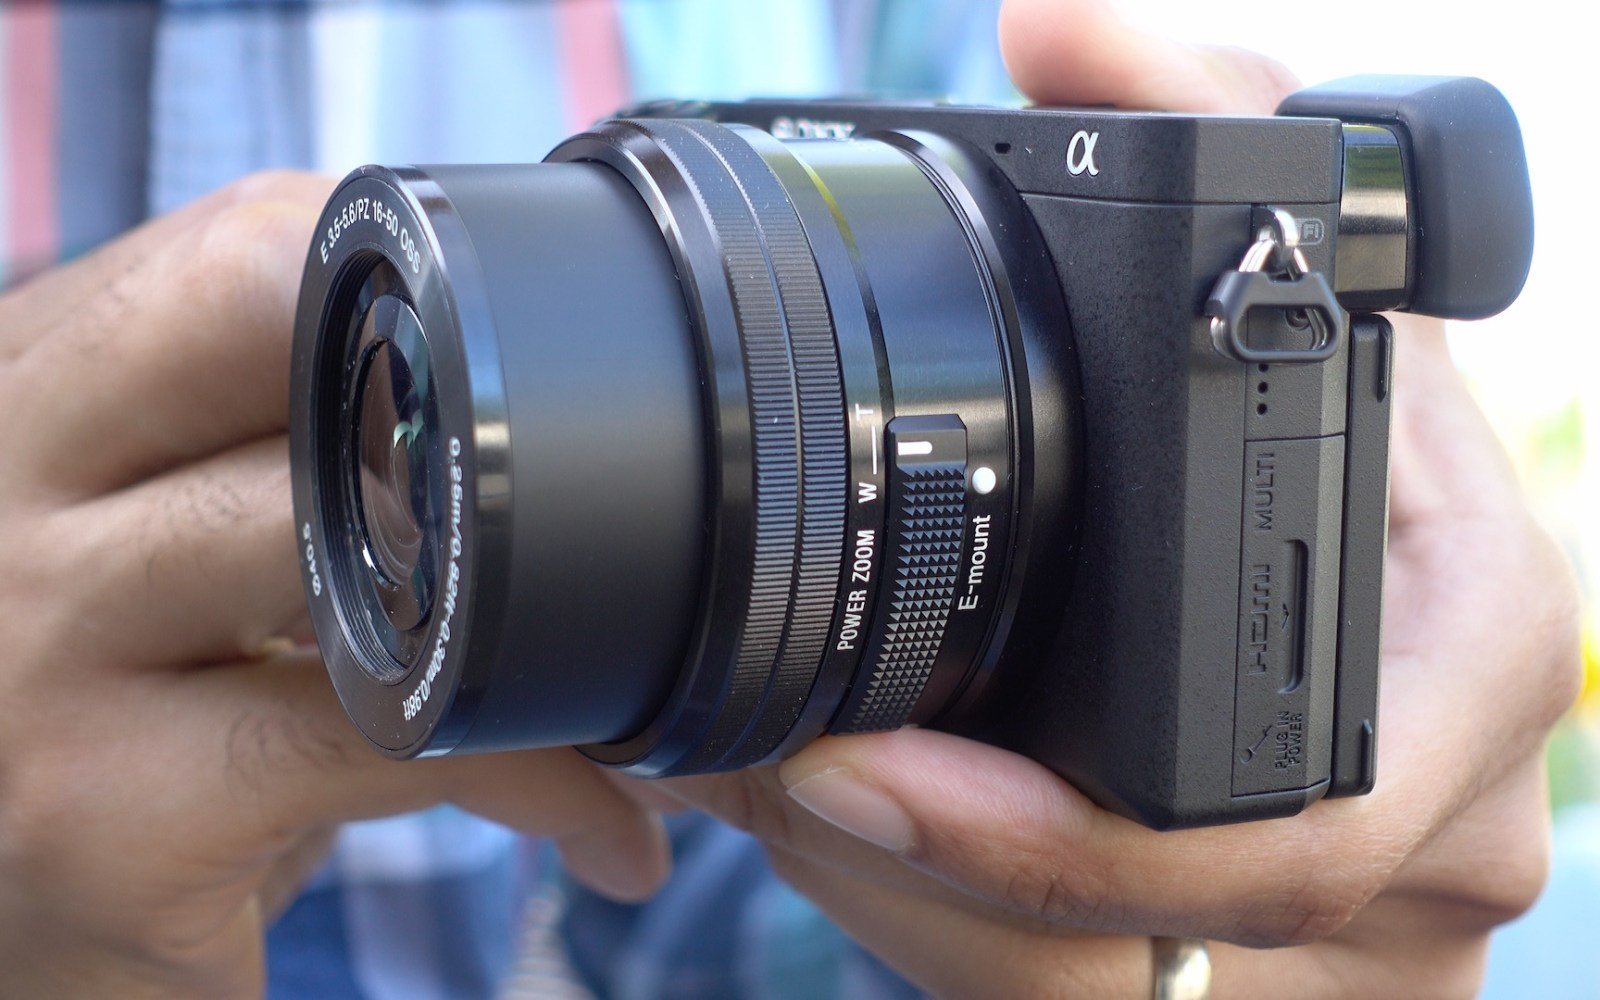 Hands-on: Sony's a6300 mirrorless camera makes a great 4K shooting companion